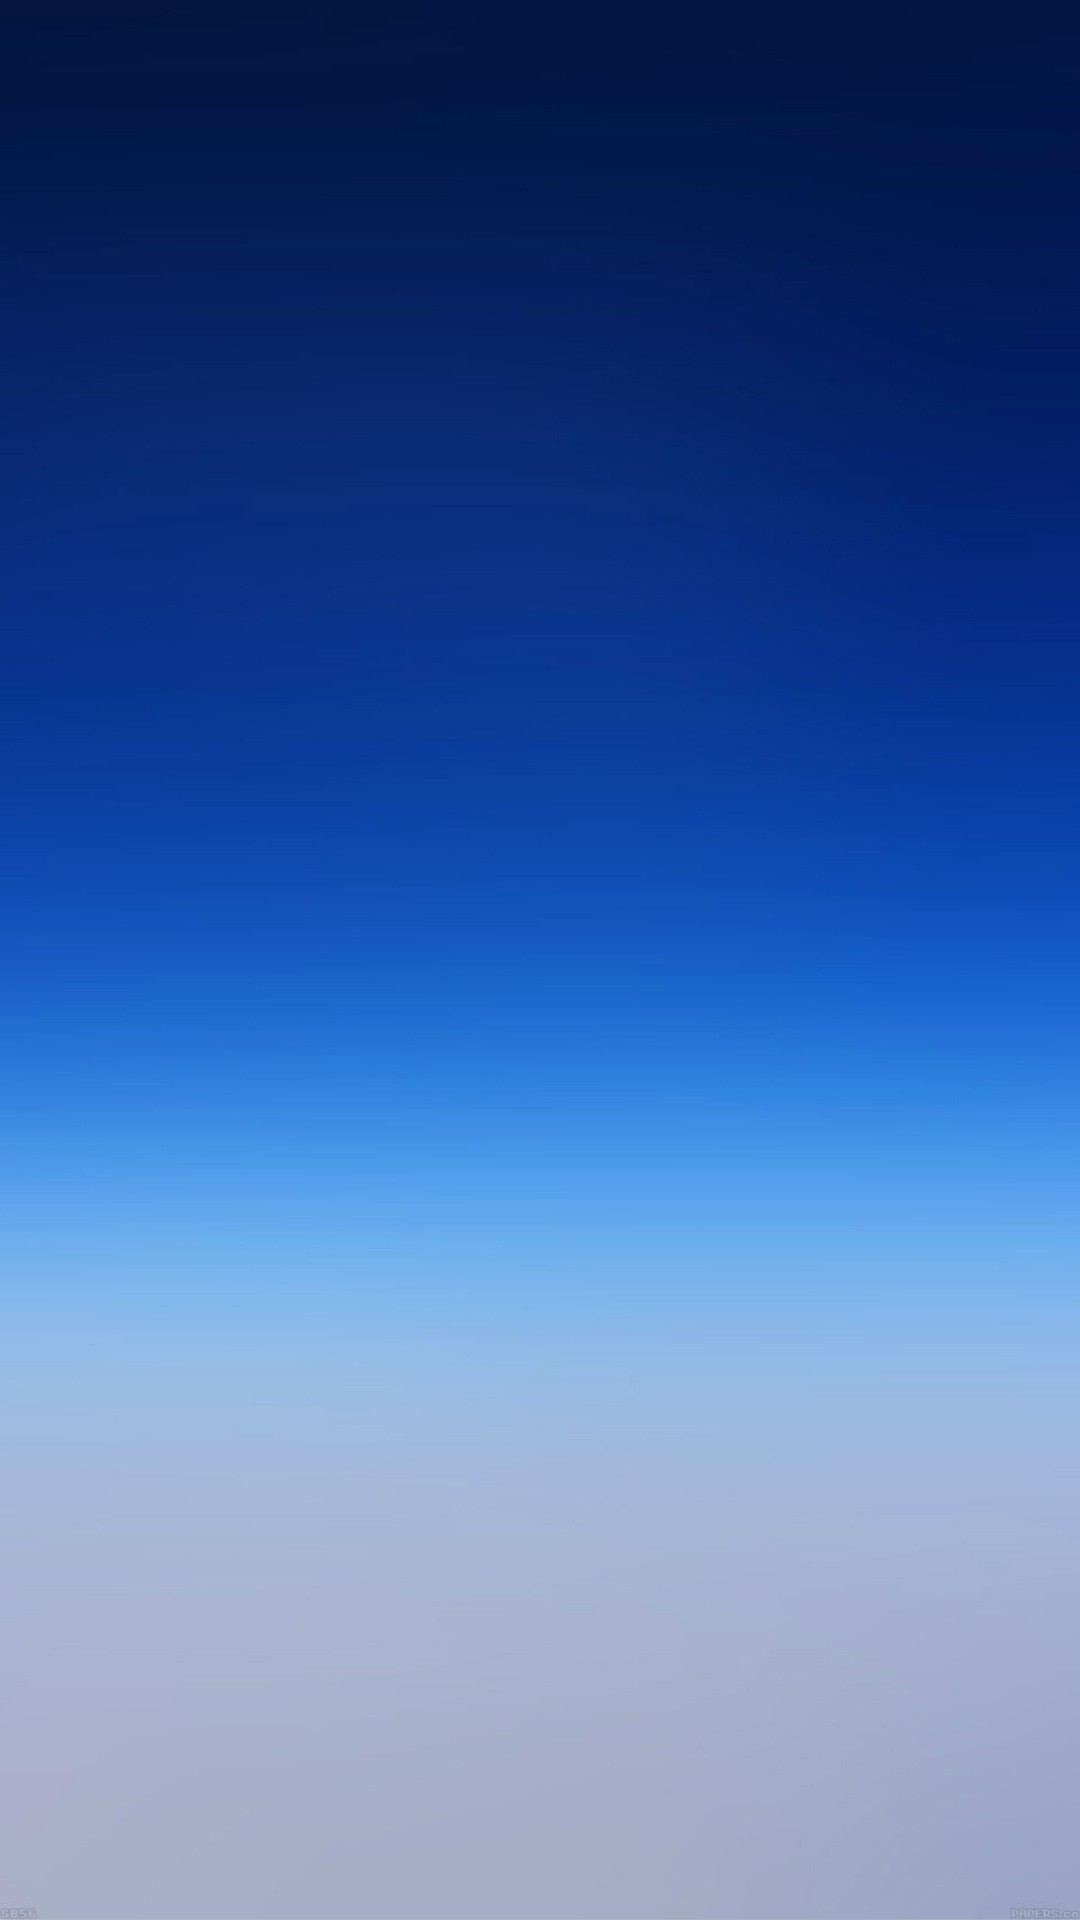 background gradient  u00b7 u2460 download free high resolution